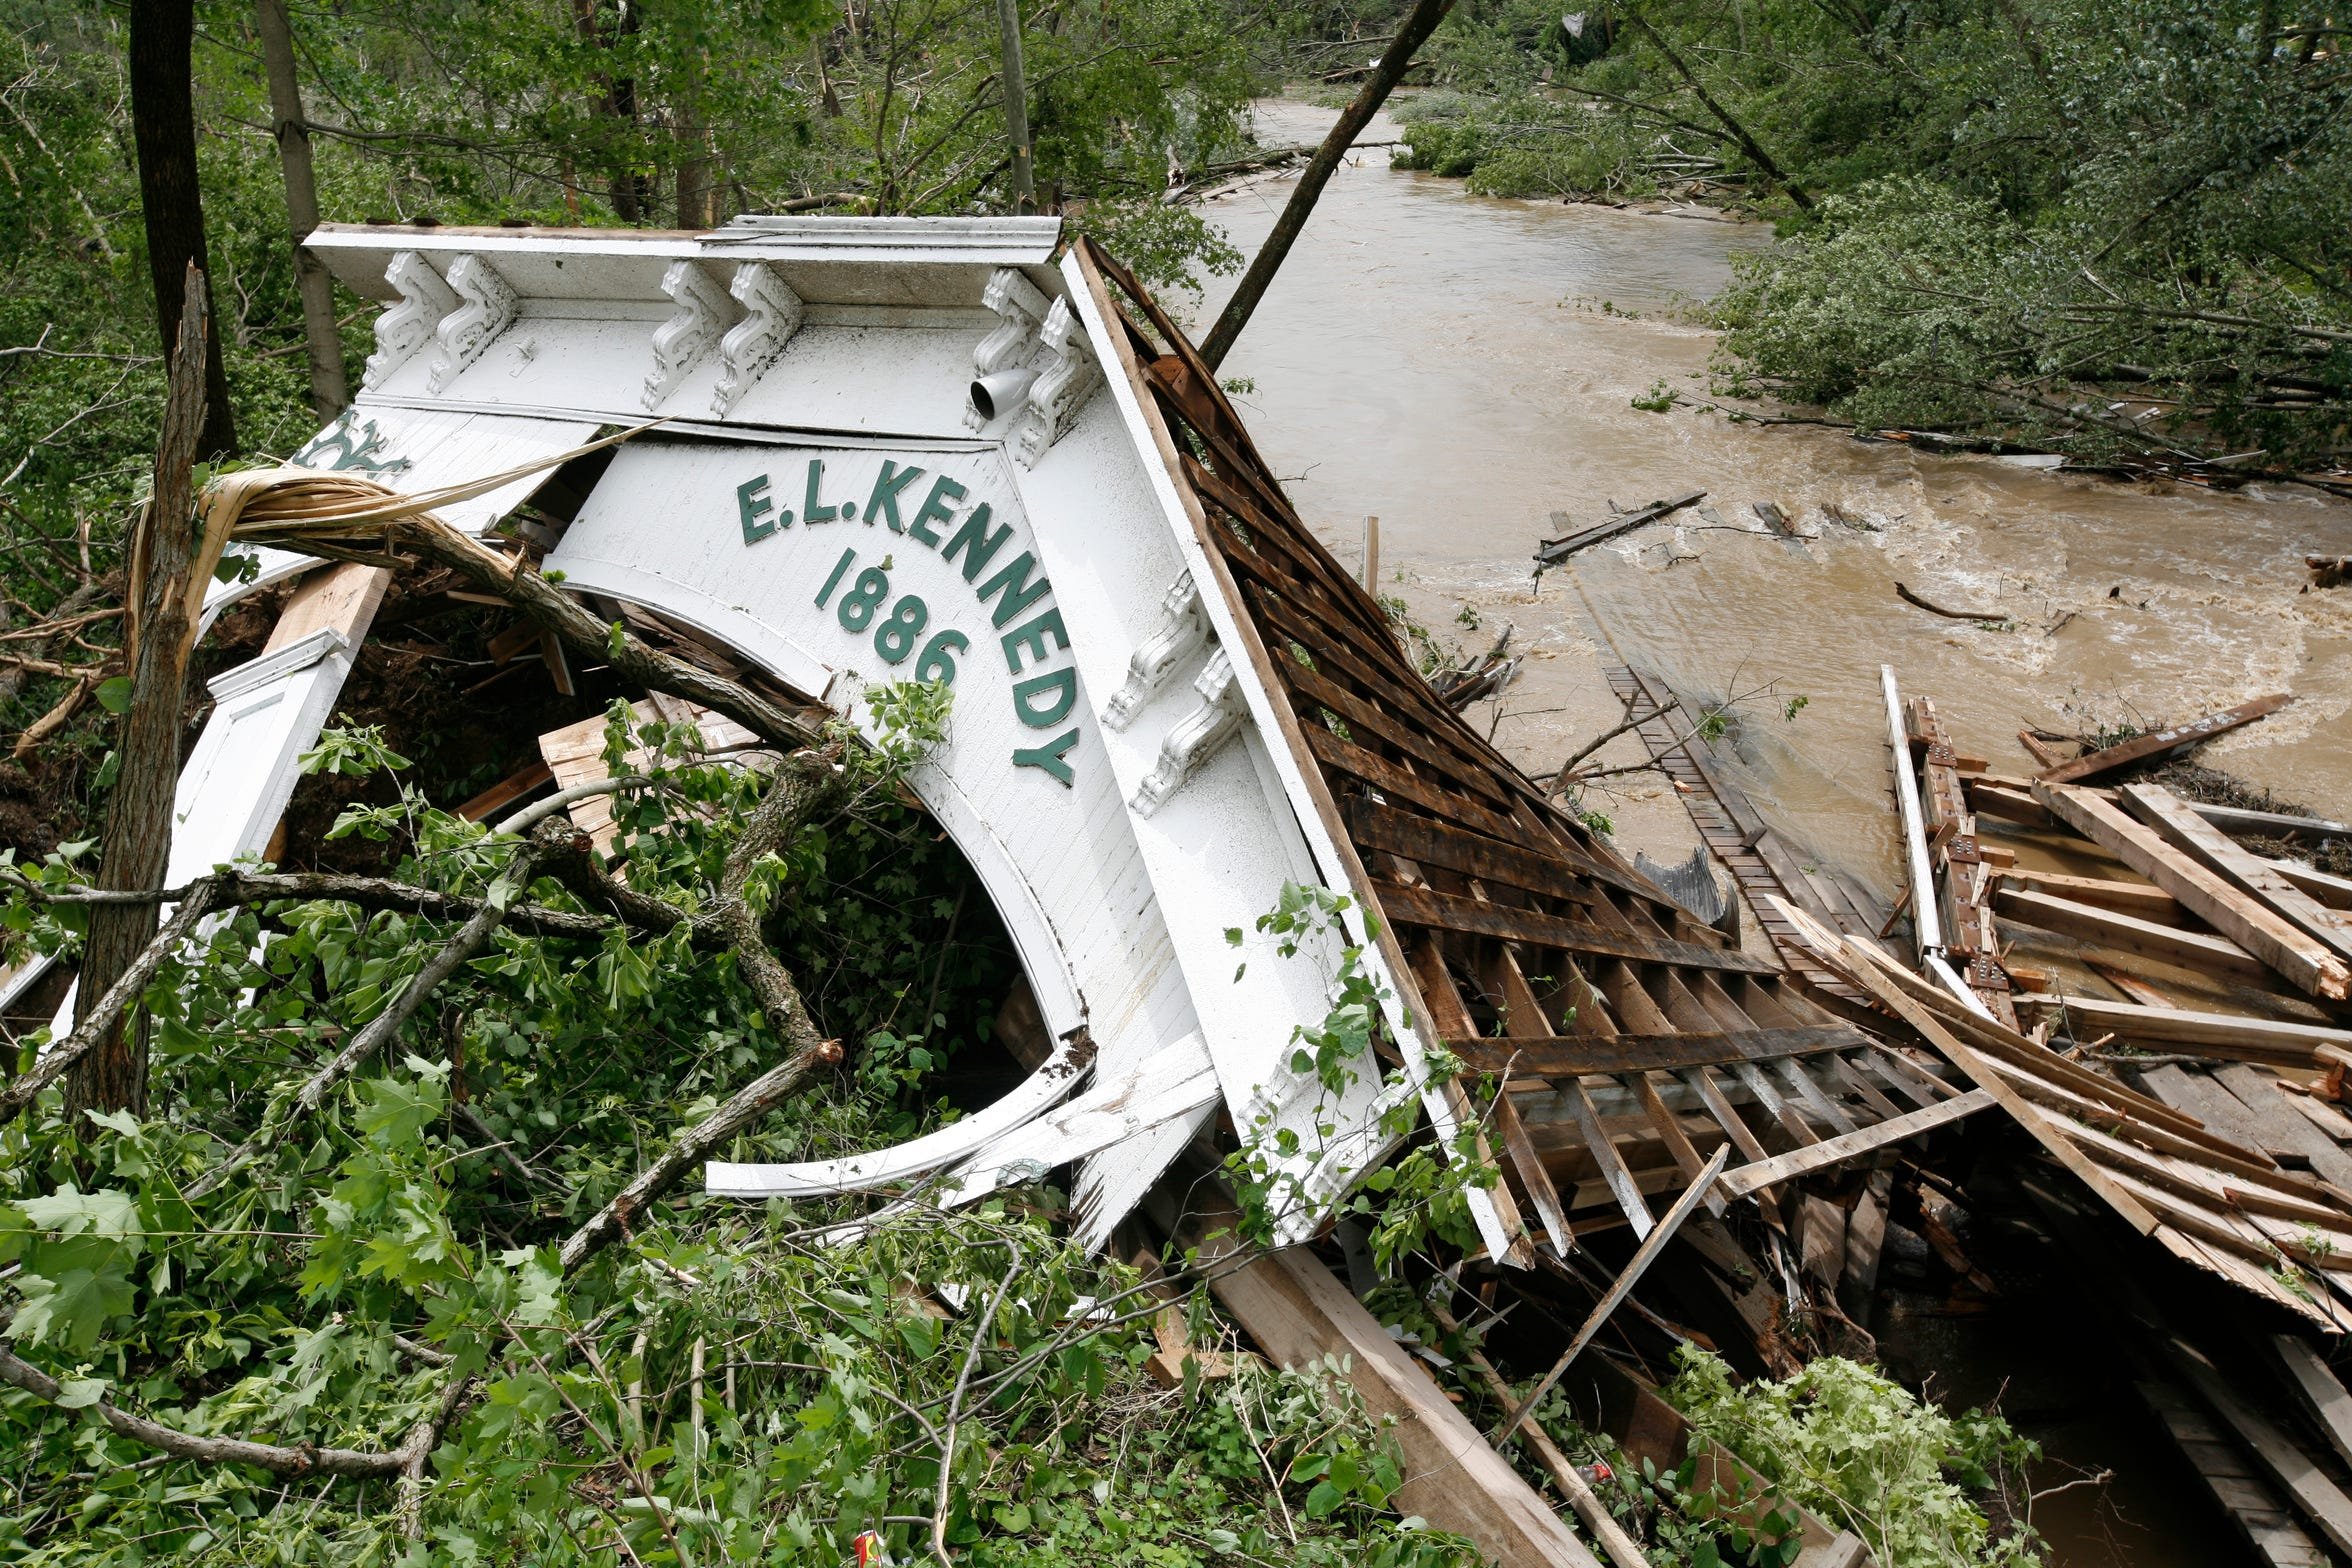 The remains of the Moscow covered bridge stretch across the water June 4, 2008, after the historic landmark was destroyed by an overnight tornado in the small Rush County town. It was rebuilt in 2010.